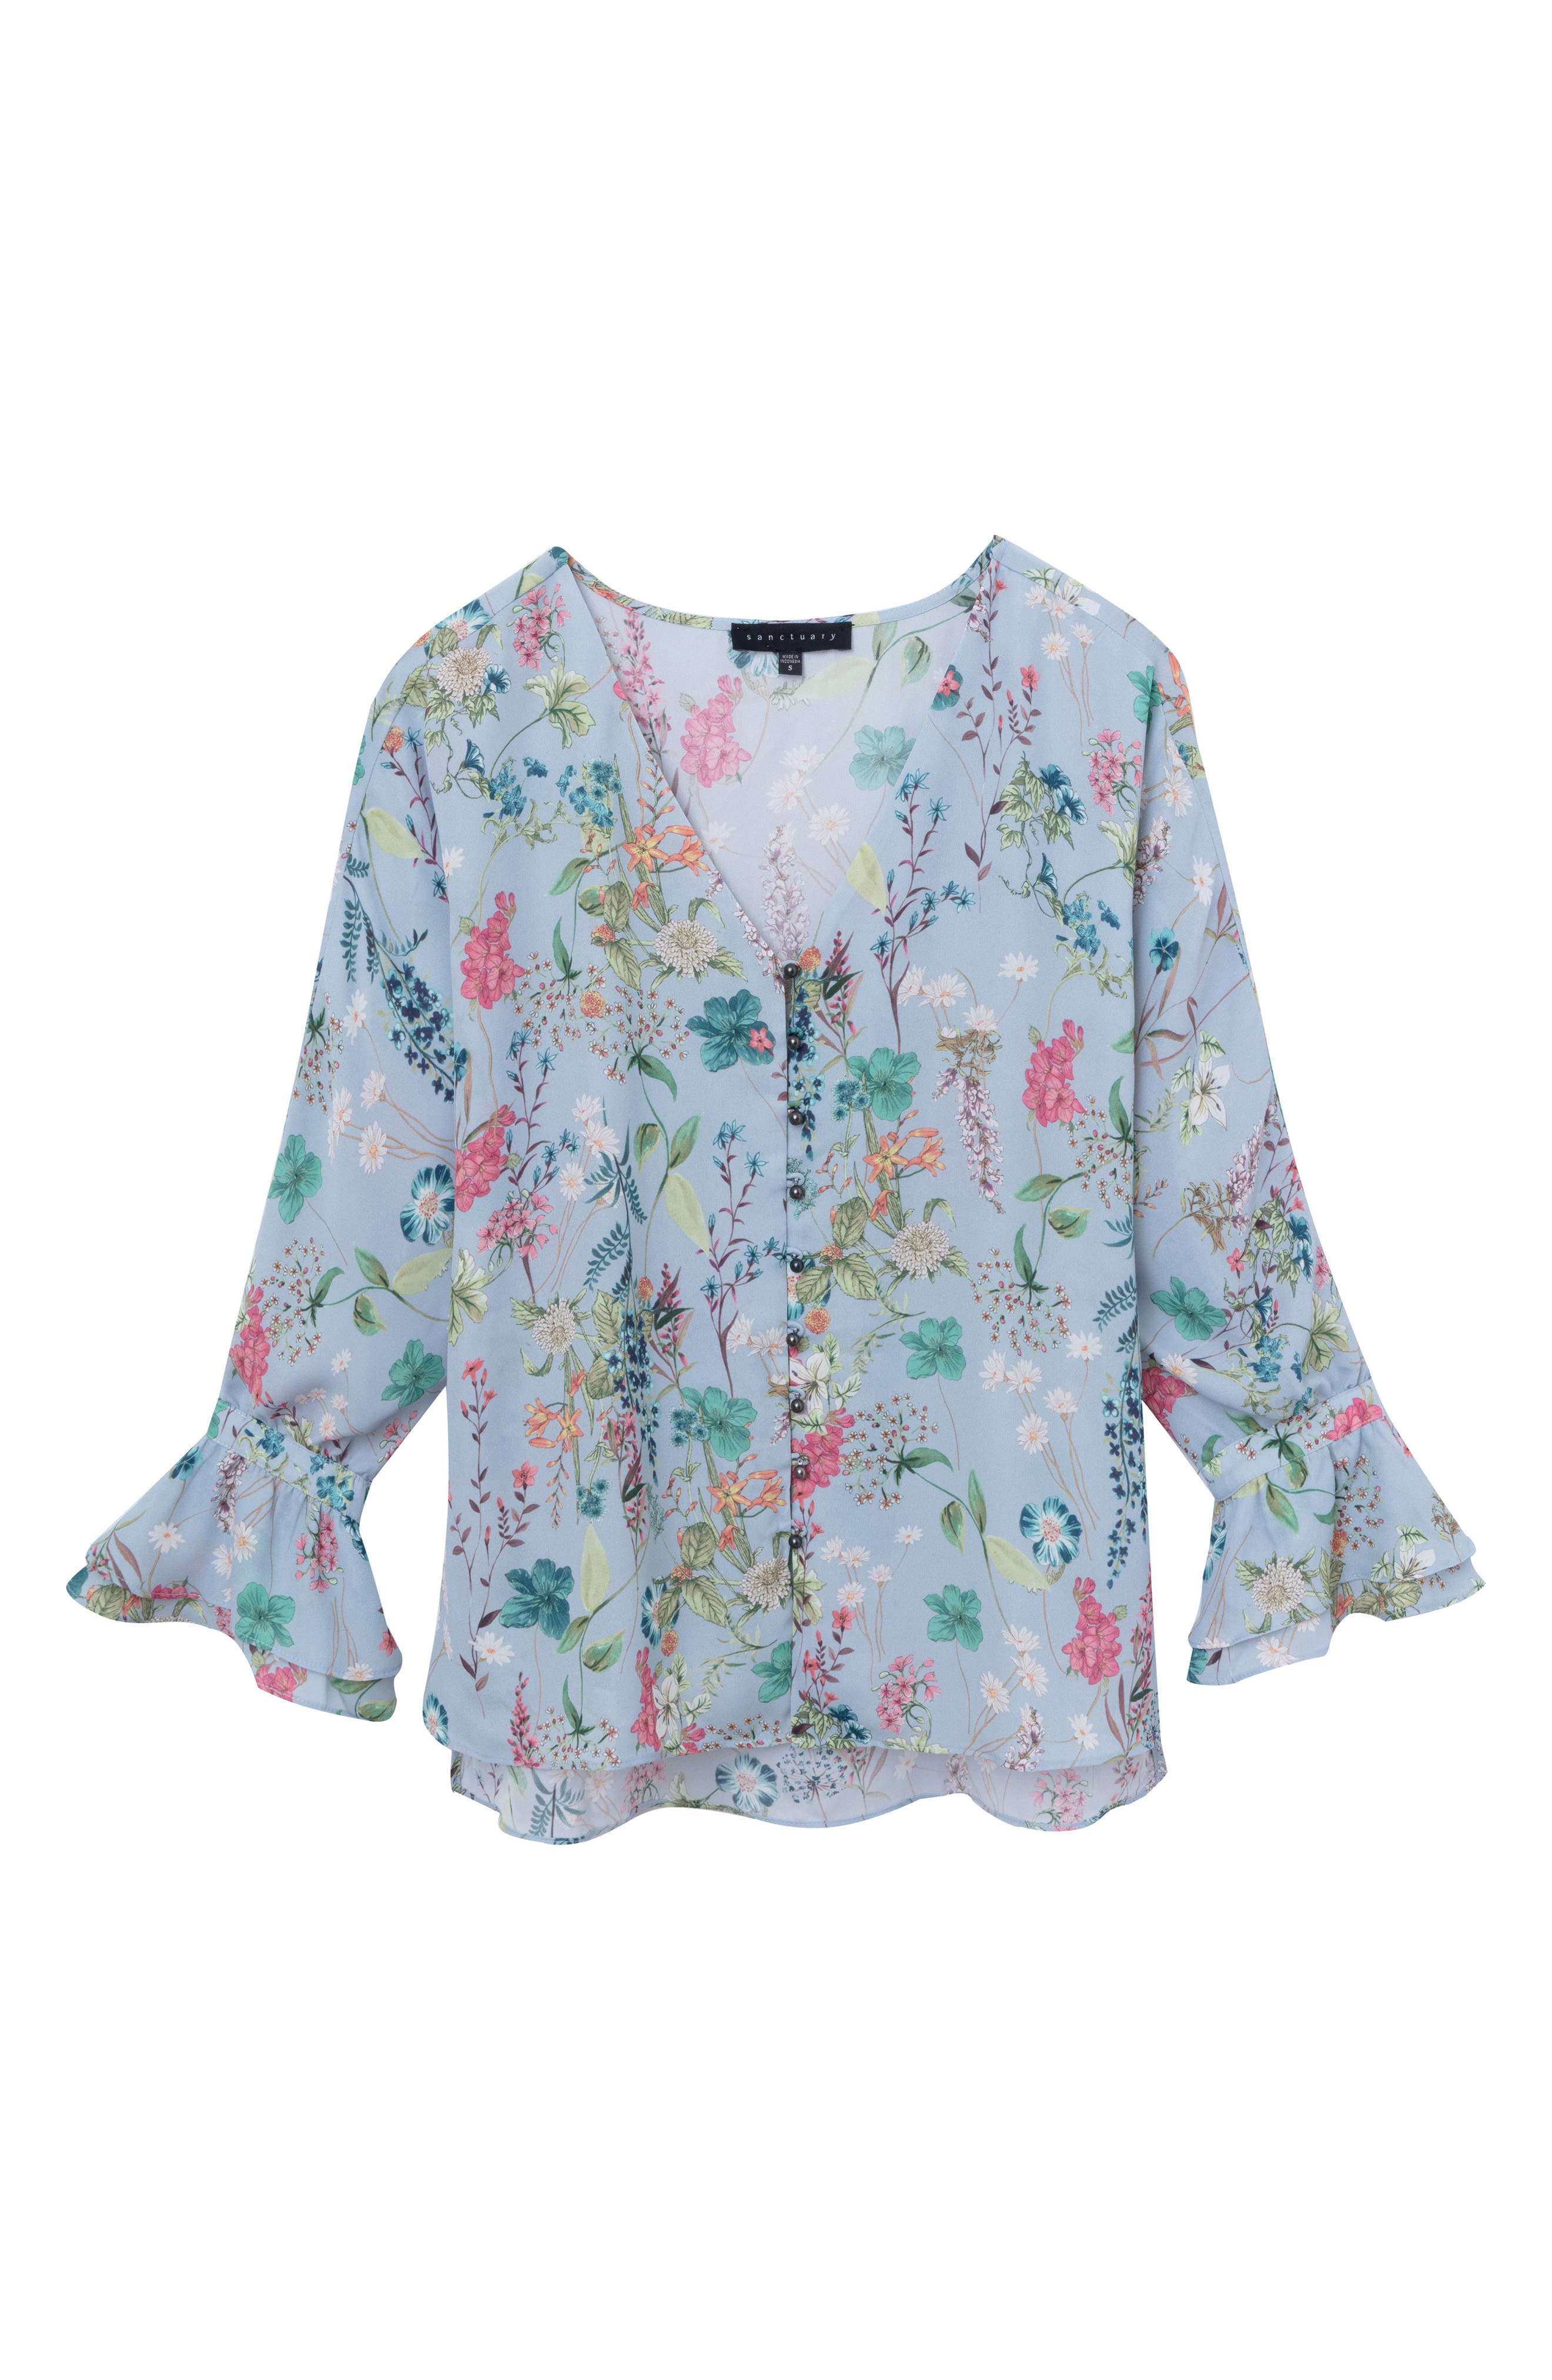 Posey Floral Blouse,                             Alternate thumbnail 3, color,                             Bluebell